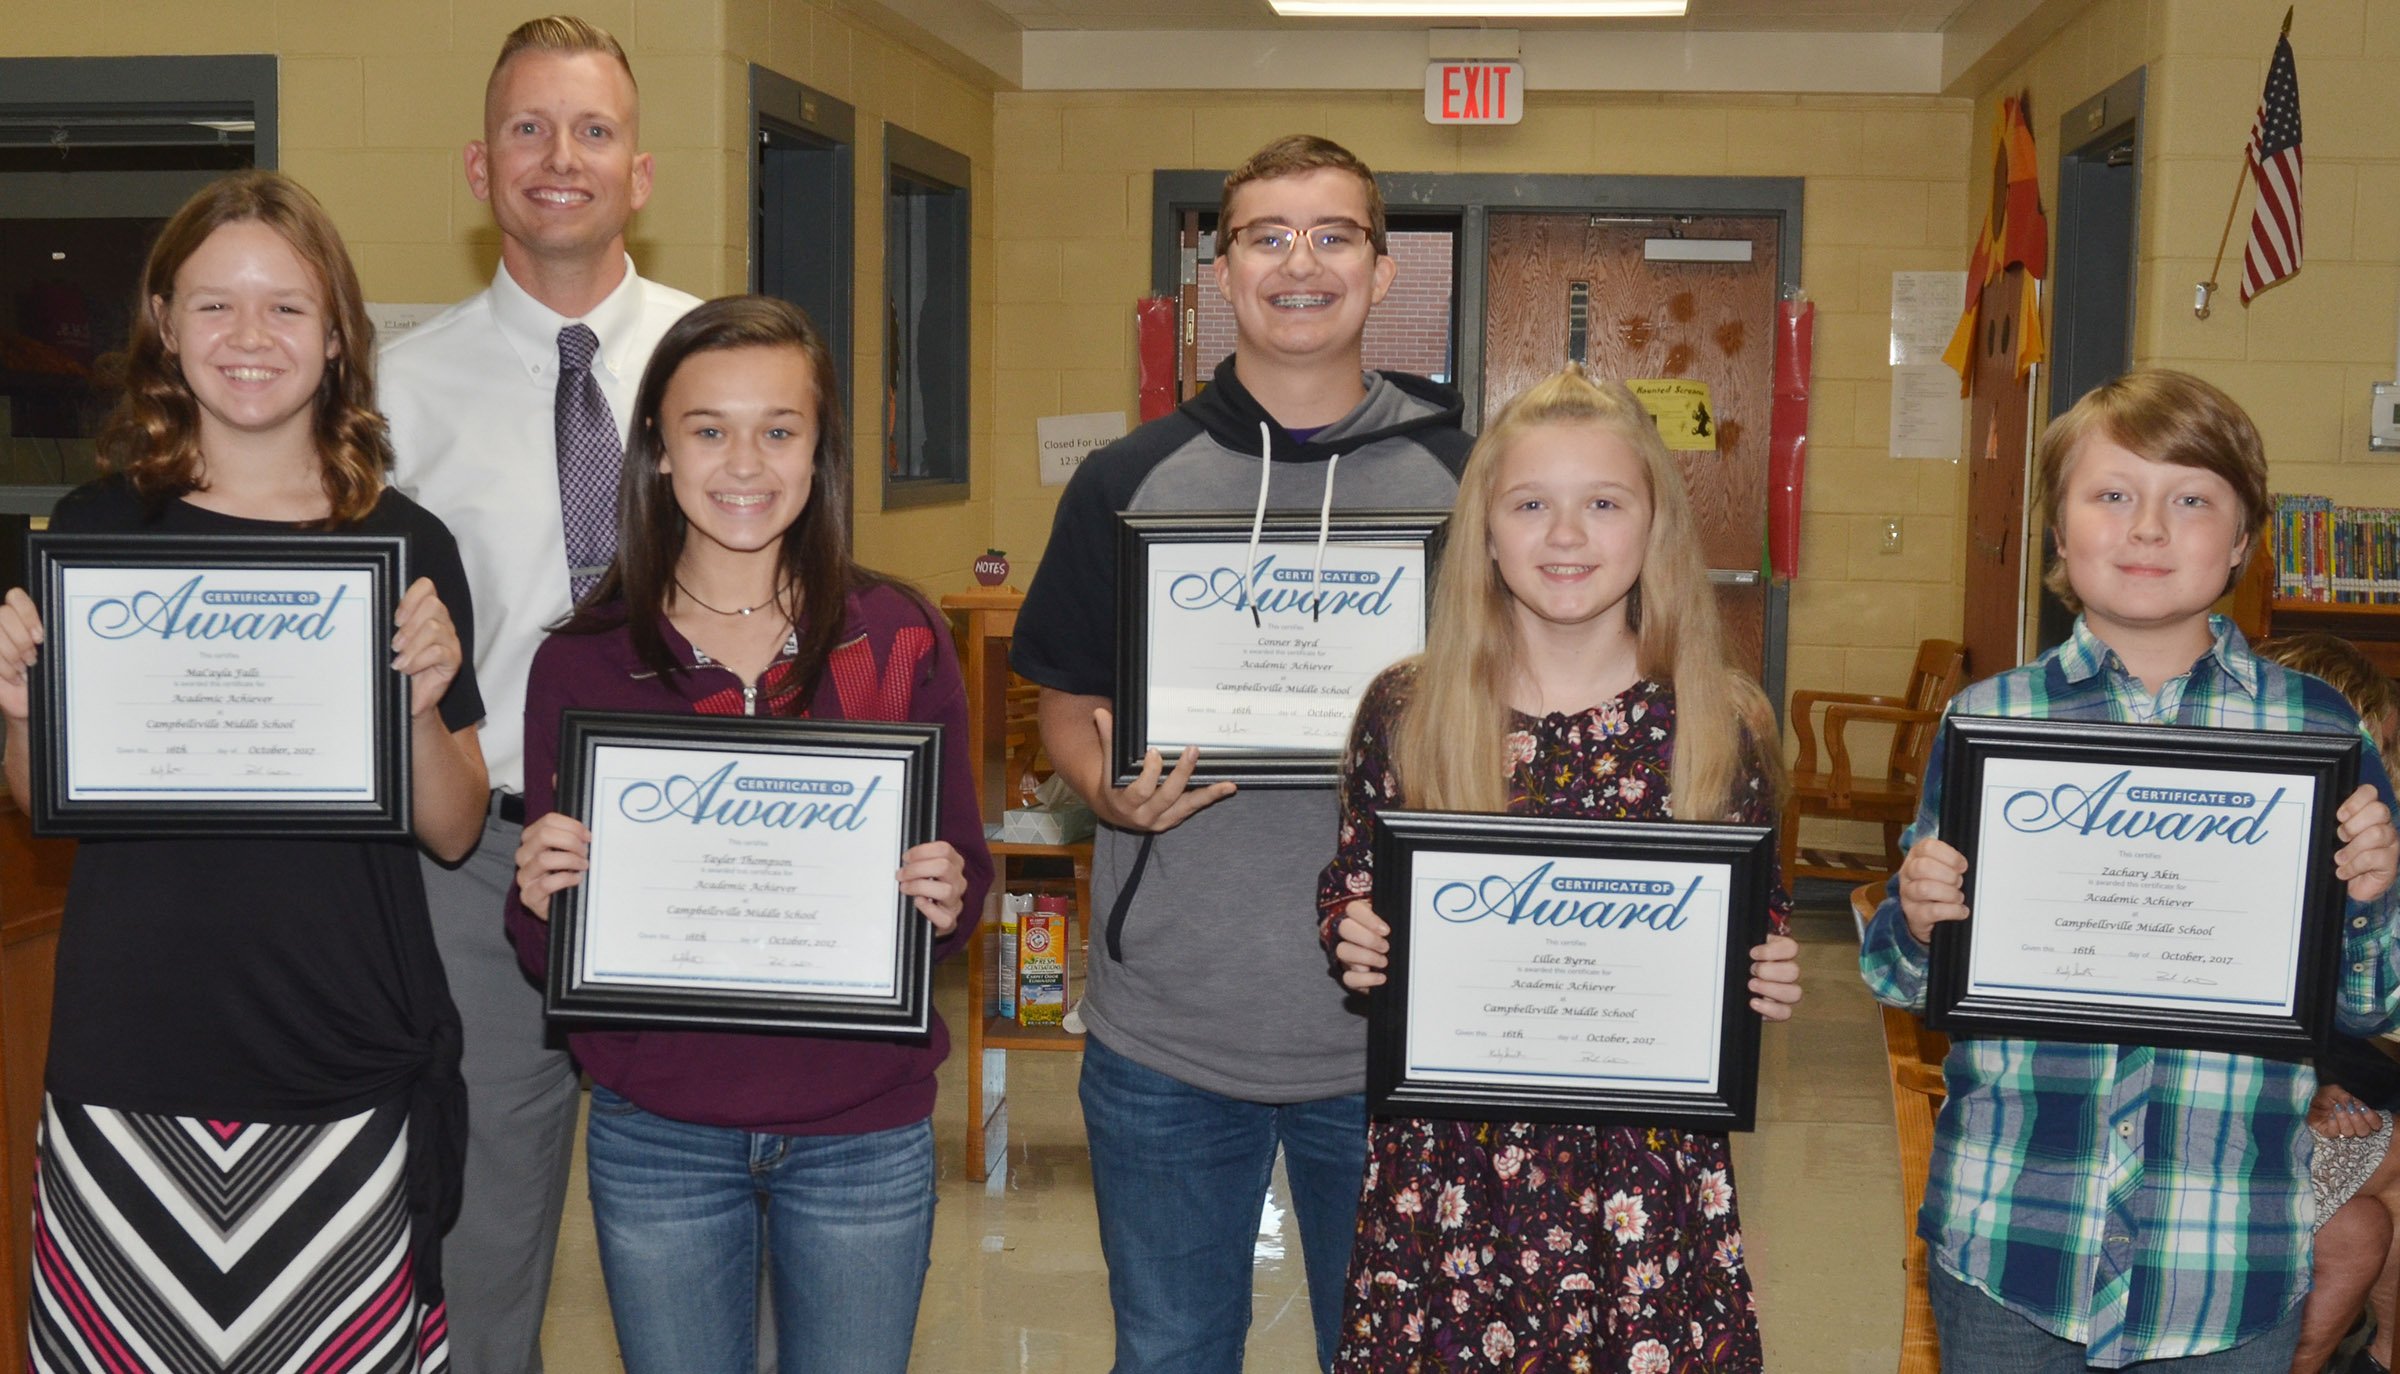 Campbellsville Middle School academic achievers for October were recognized at the Campbellsville Board of Education meeting on Monday, Oct. 16. Pictured with CMS Principal Zach Lewis, they are, from left, seventh-grader MaCayla Falls, eighth-grader Tayler Thompson, seventh-grader Connor Byrd and sixth-graders Lillee Byrne and Zachary Akin. Absent from the photo is eighth-grader Tezon Mitchell.